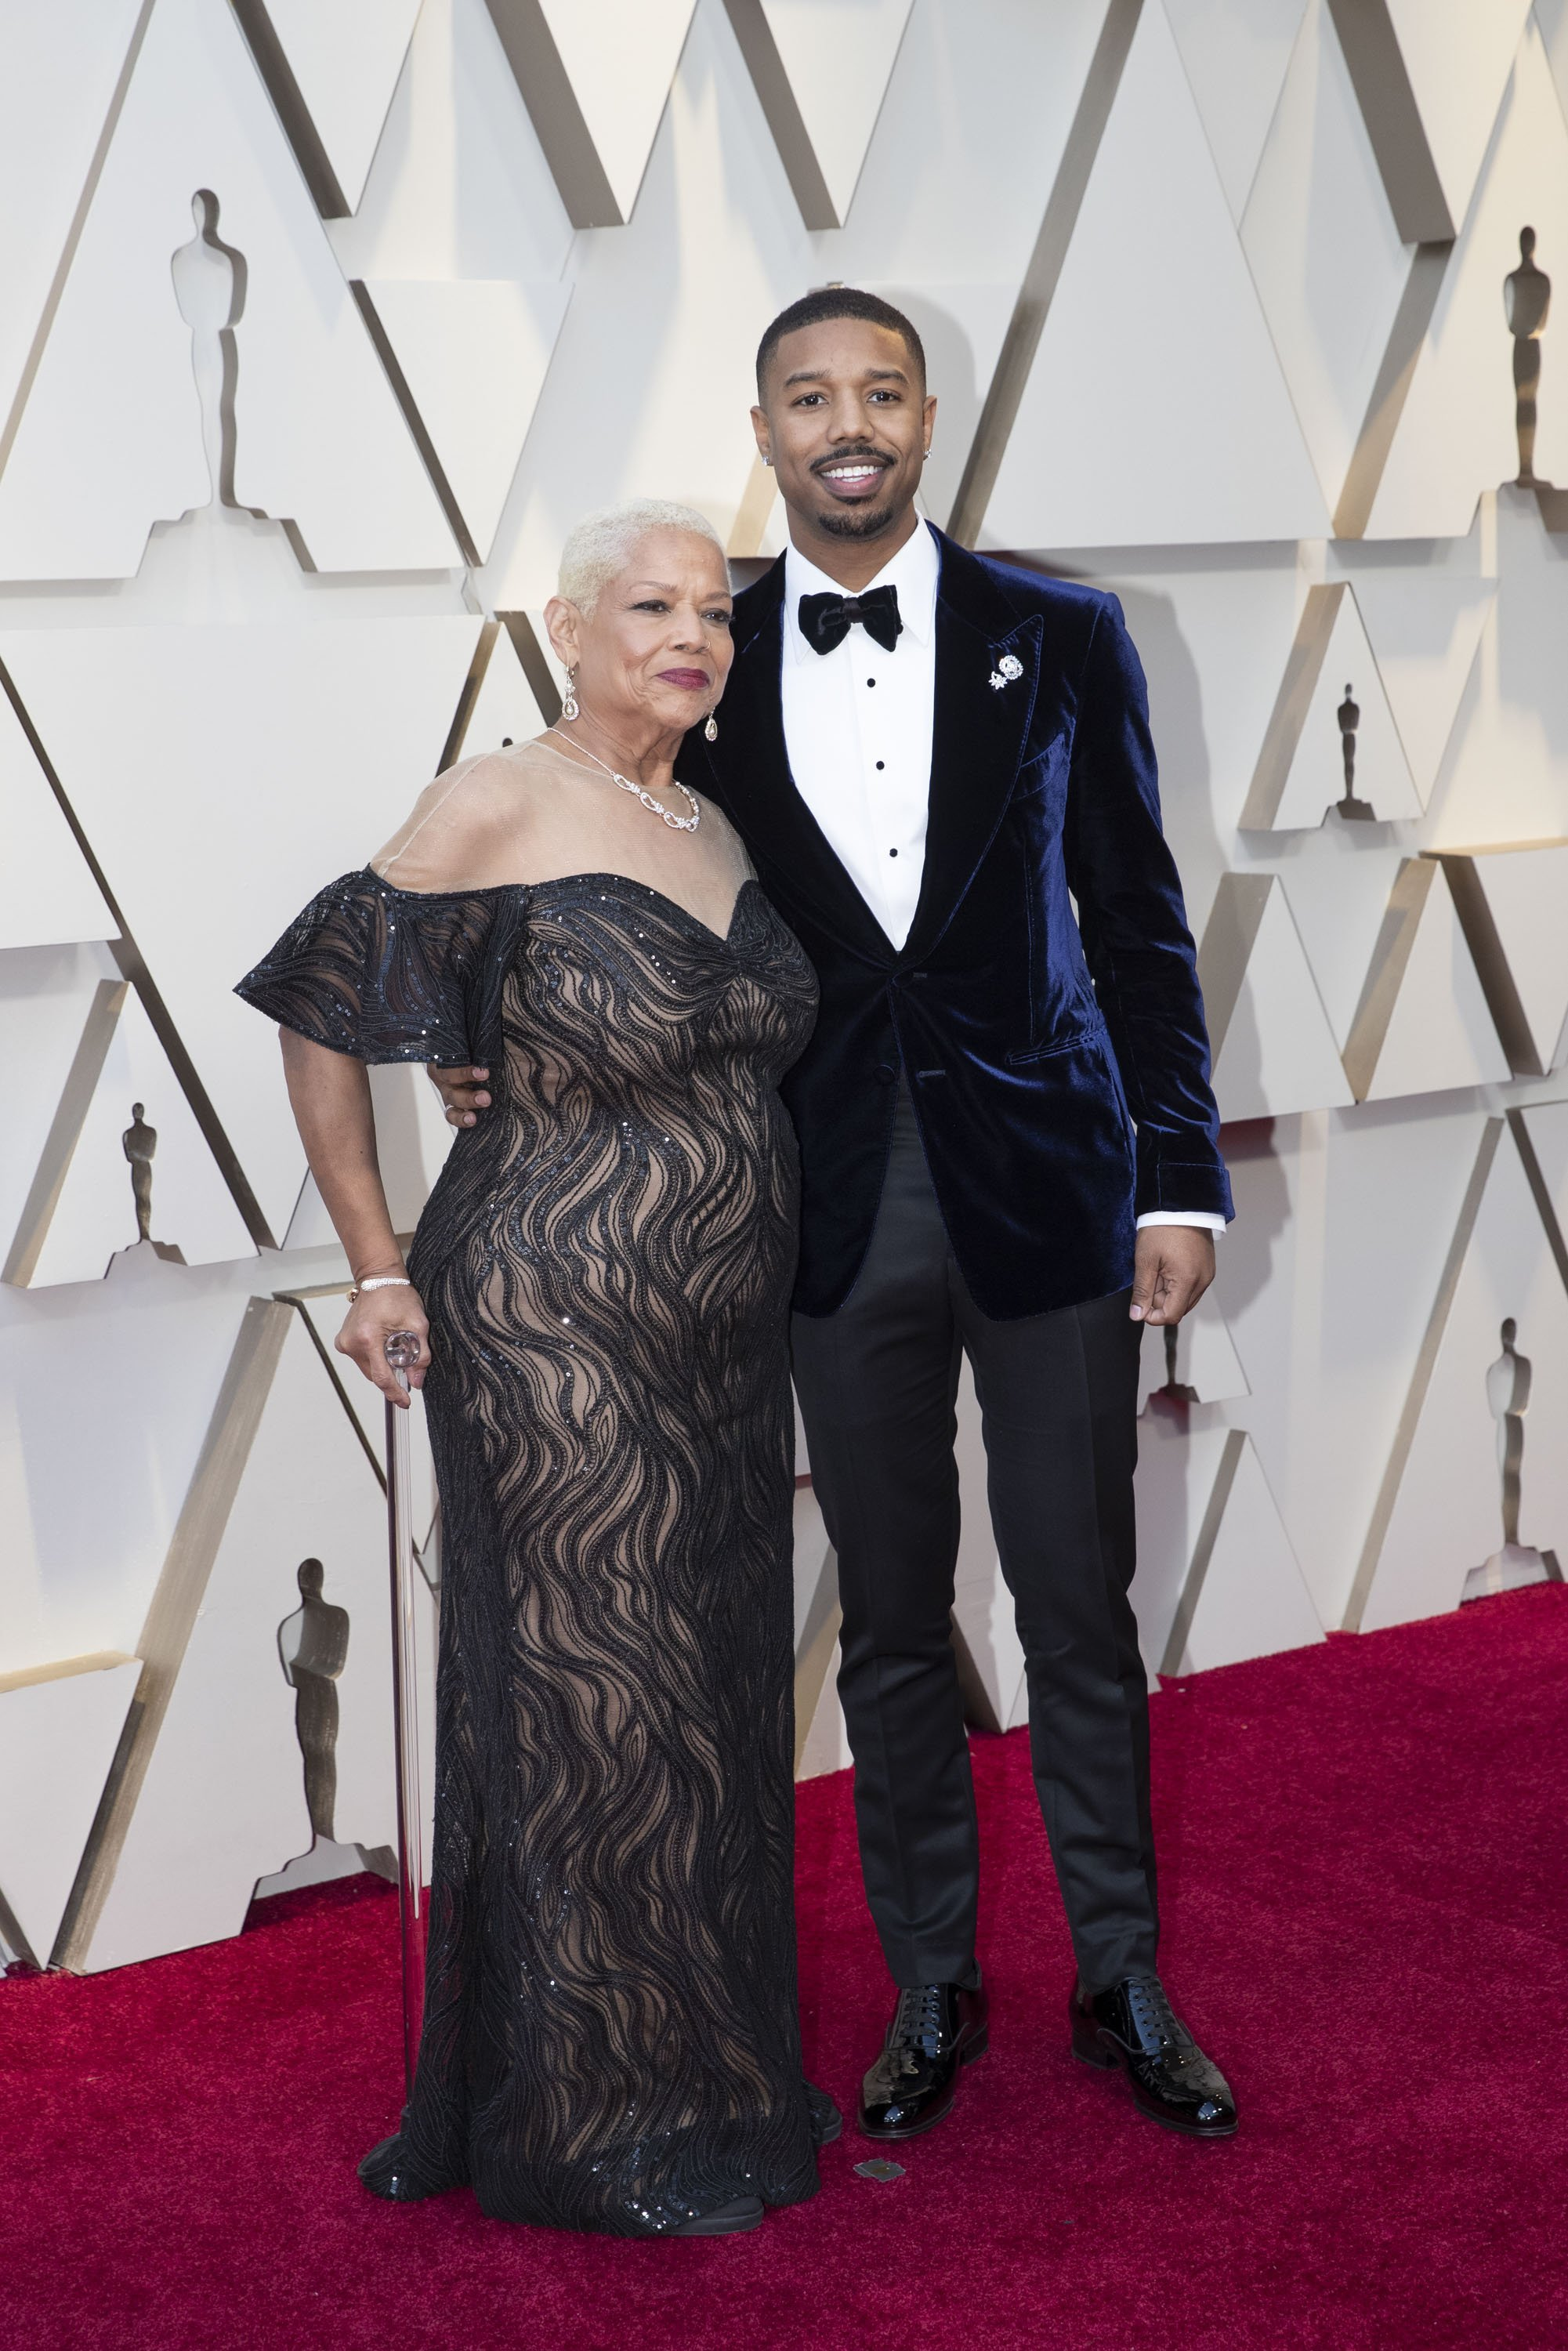 Michael B. Jordan and Guest: Red Carpet from the The 91st Oscar broadcast on Sunday, Feb. 24, 2019, at the Dolby Theatre.